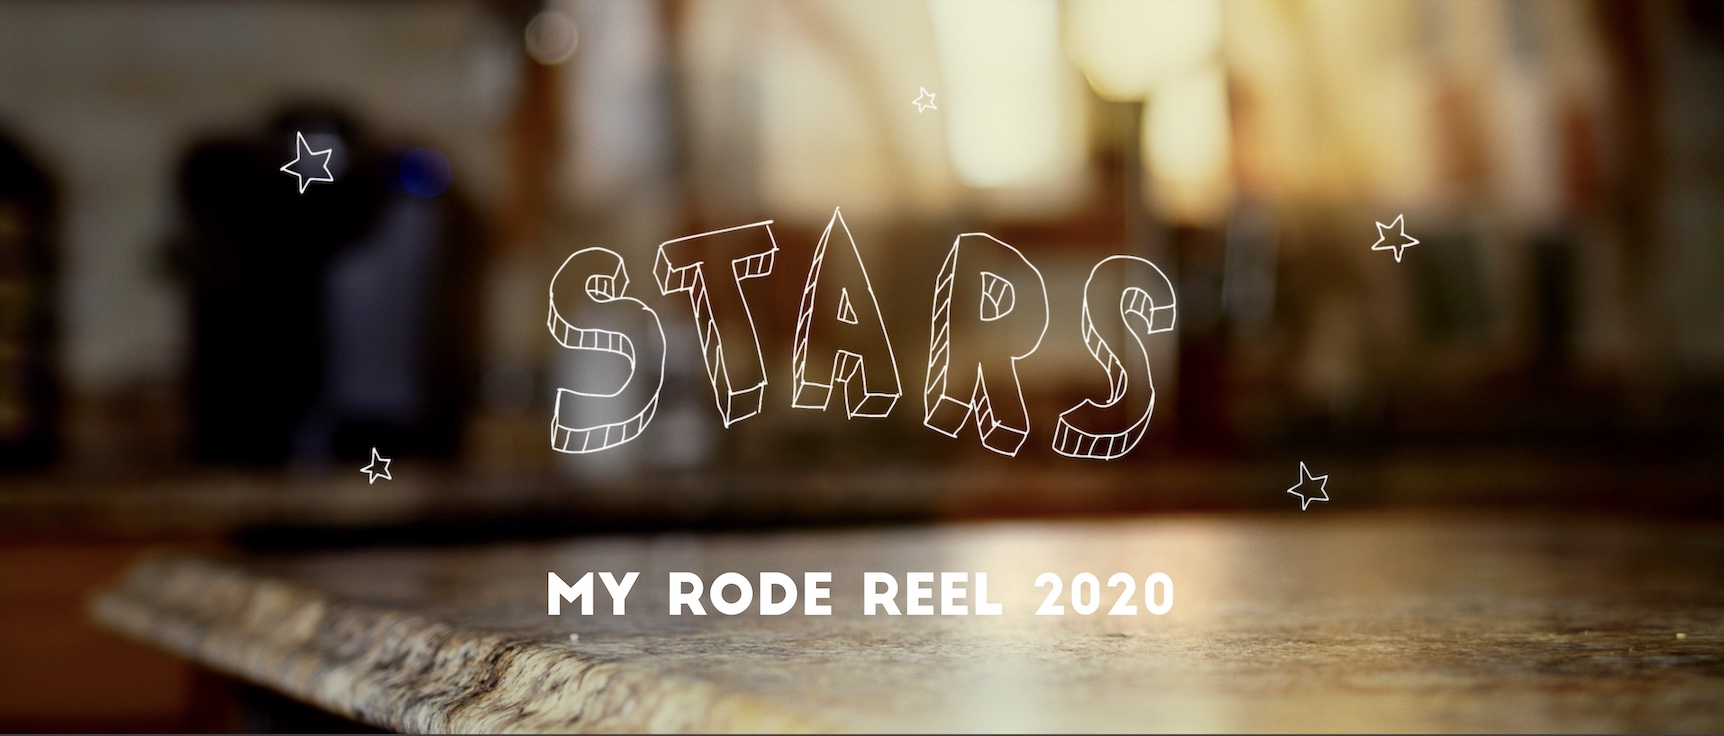 "My Rode Reel 2020 ""Stars"""